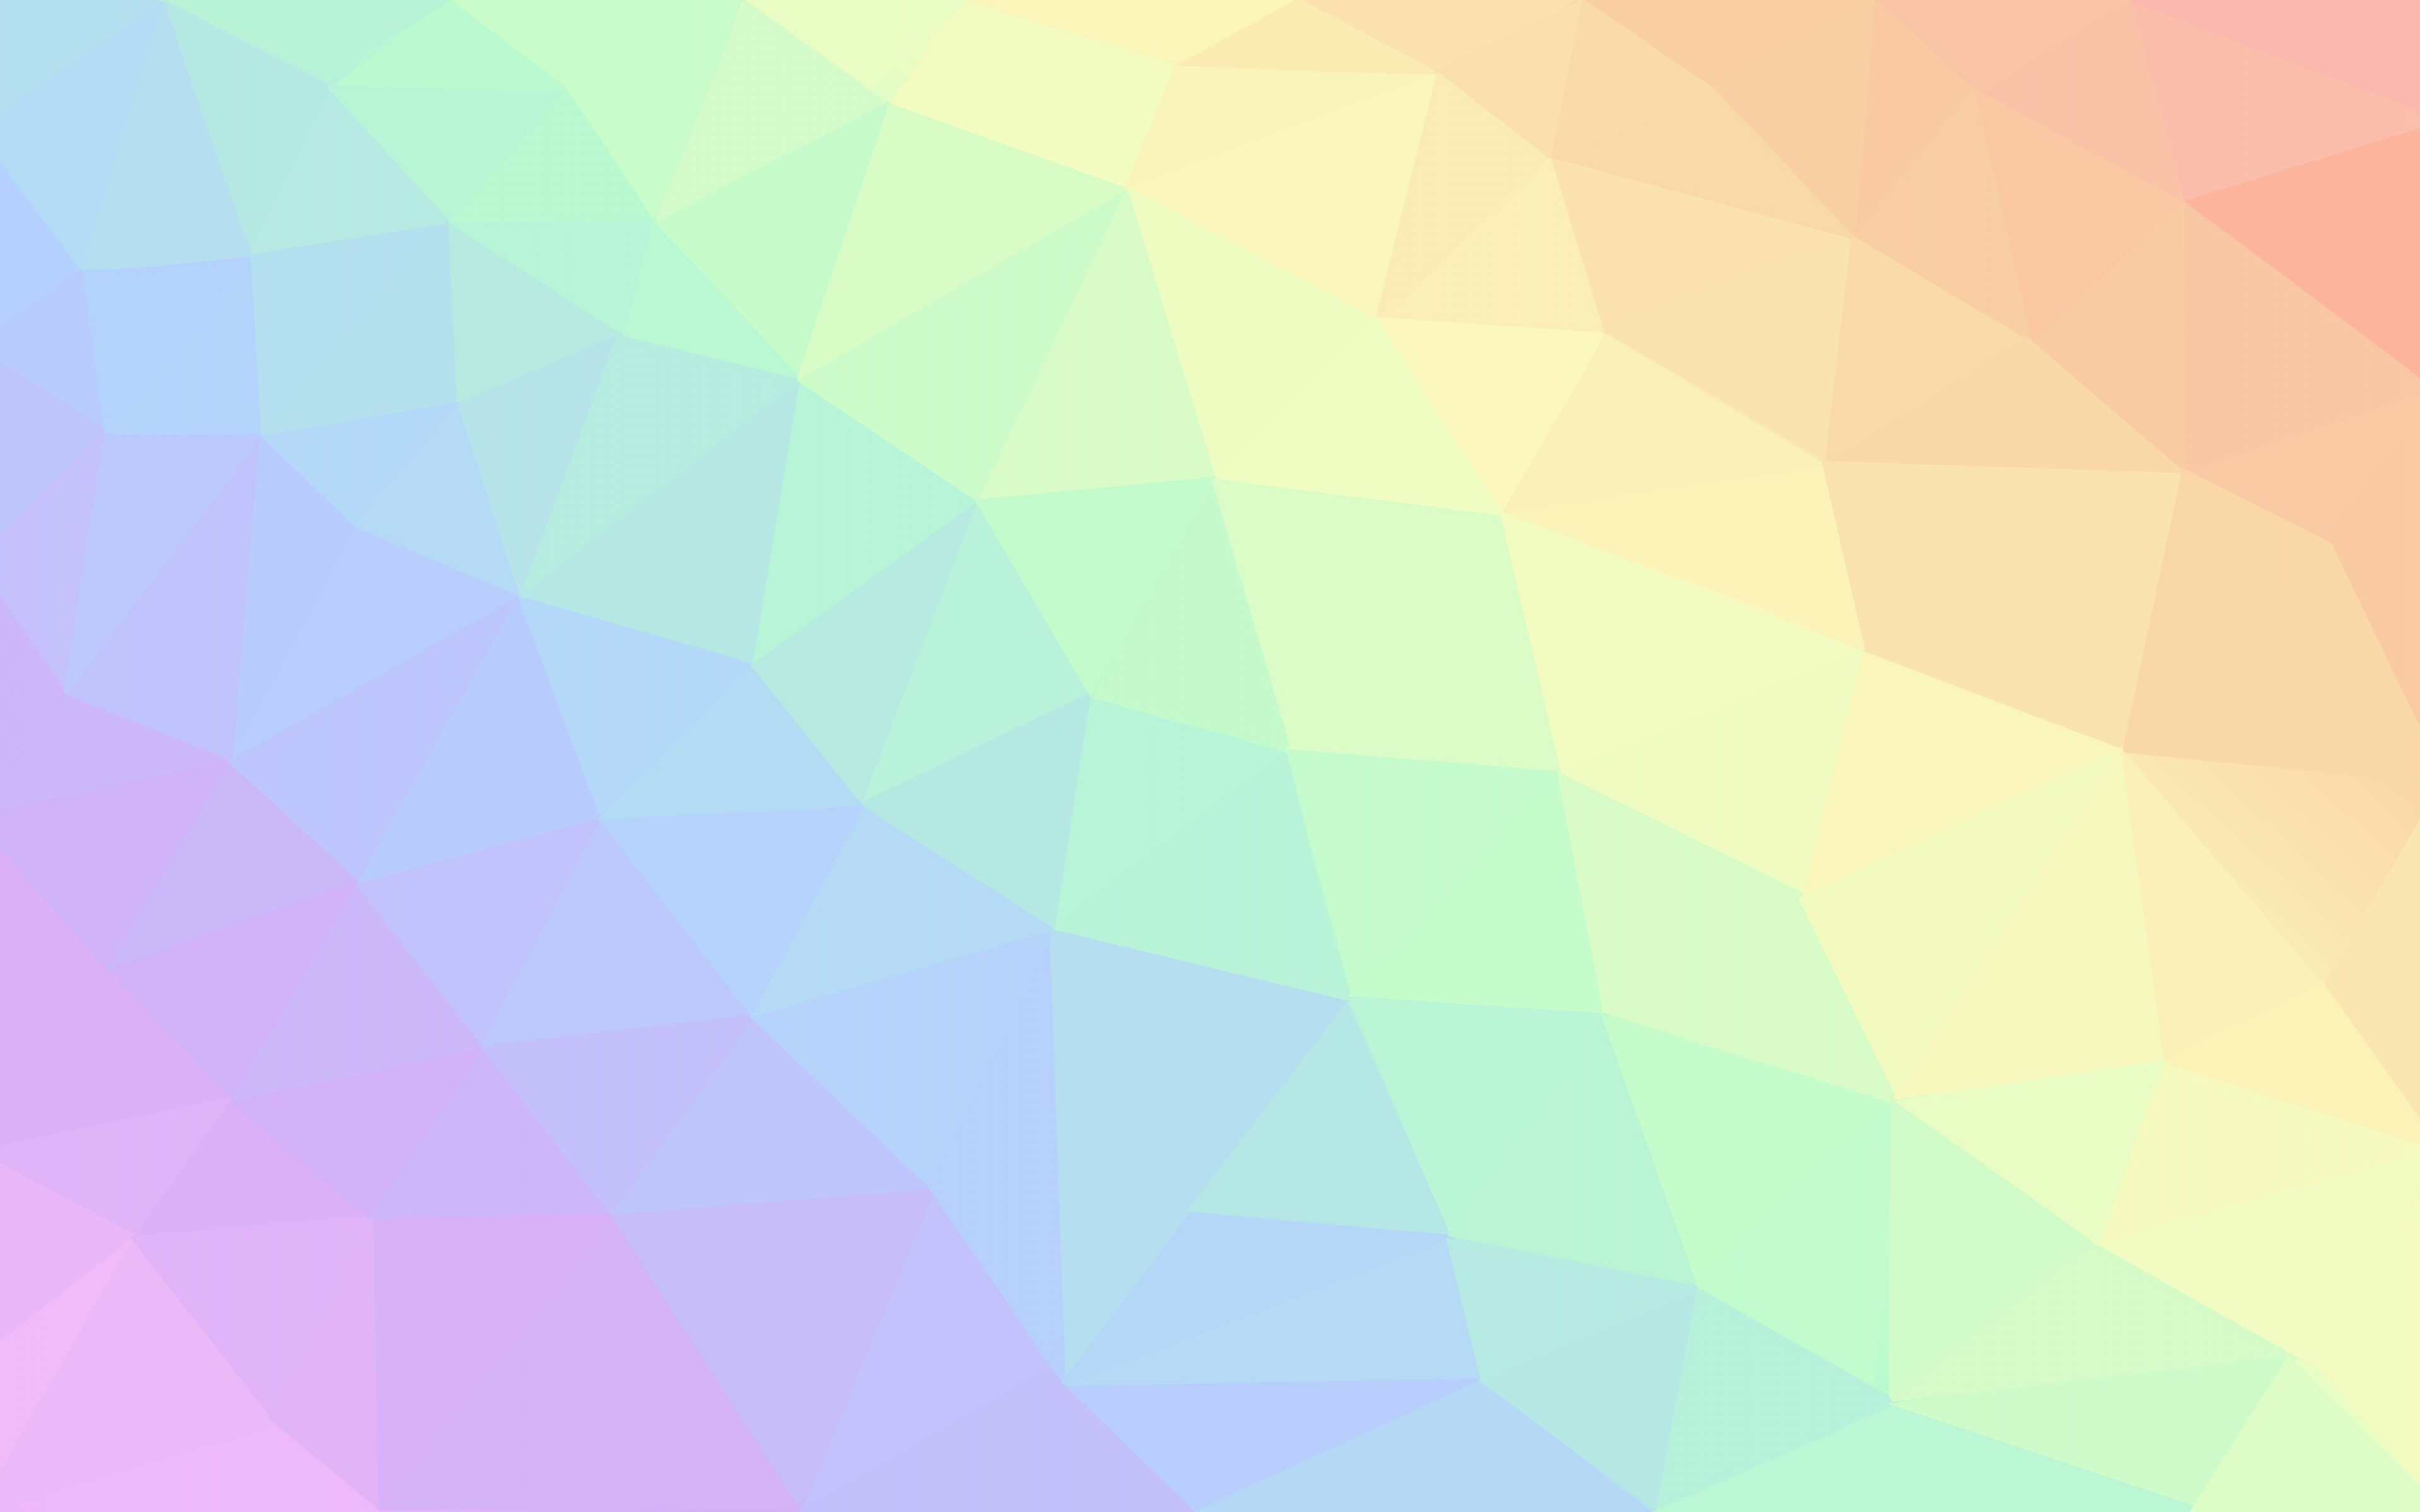 Download 3840x2400 Wallpaper Light Colors Geometric